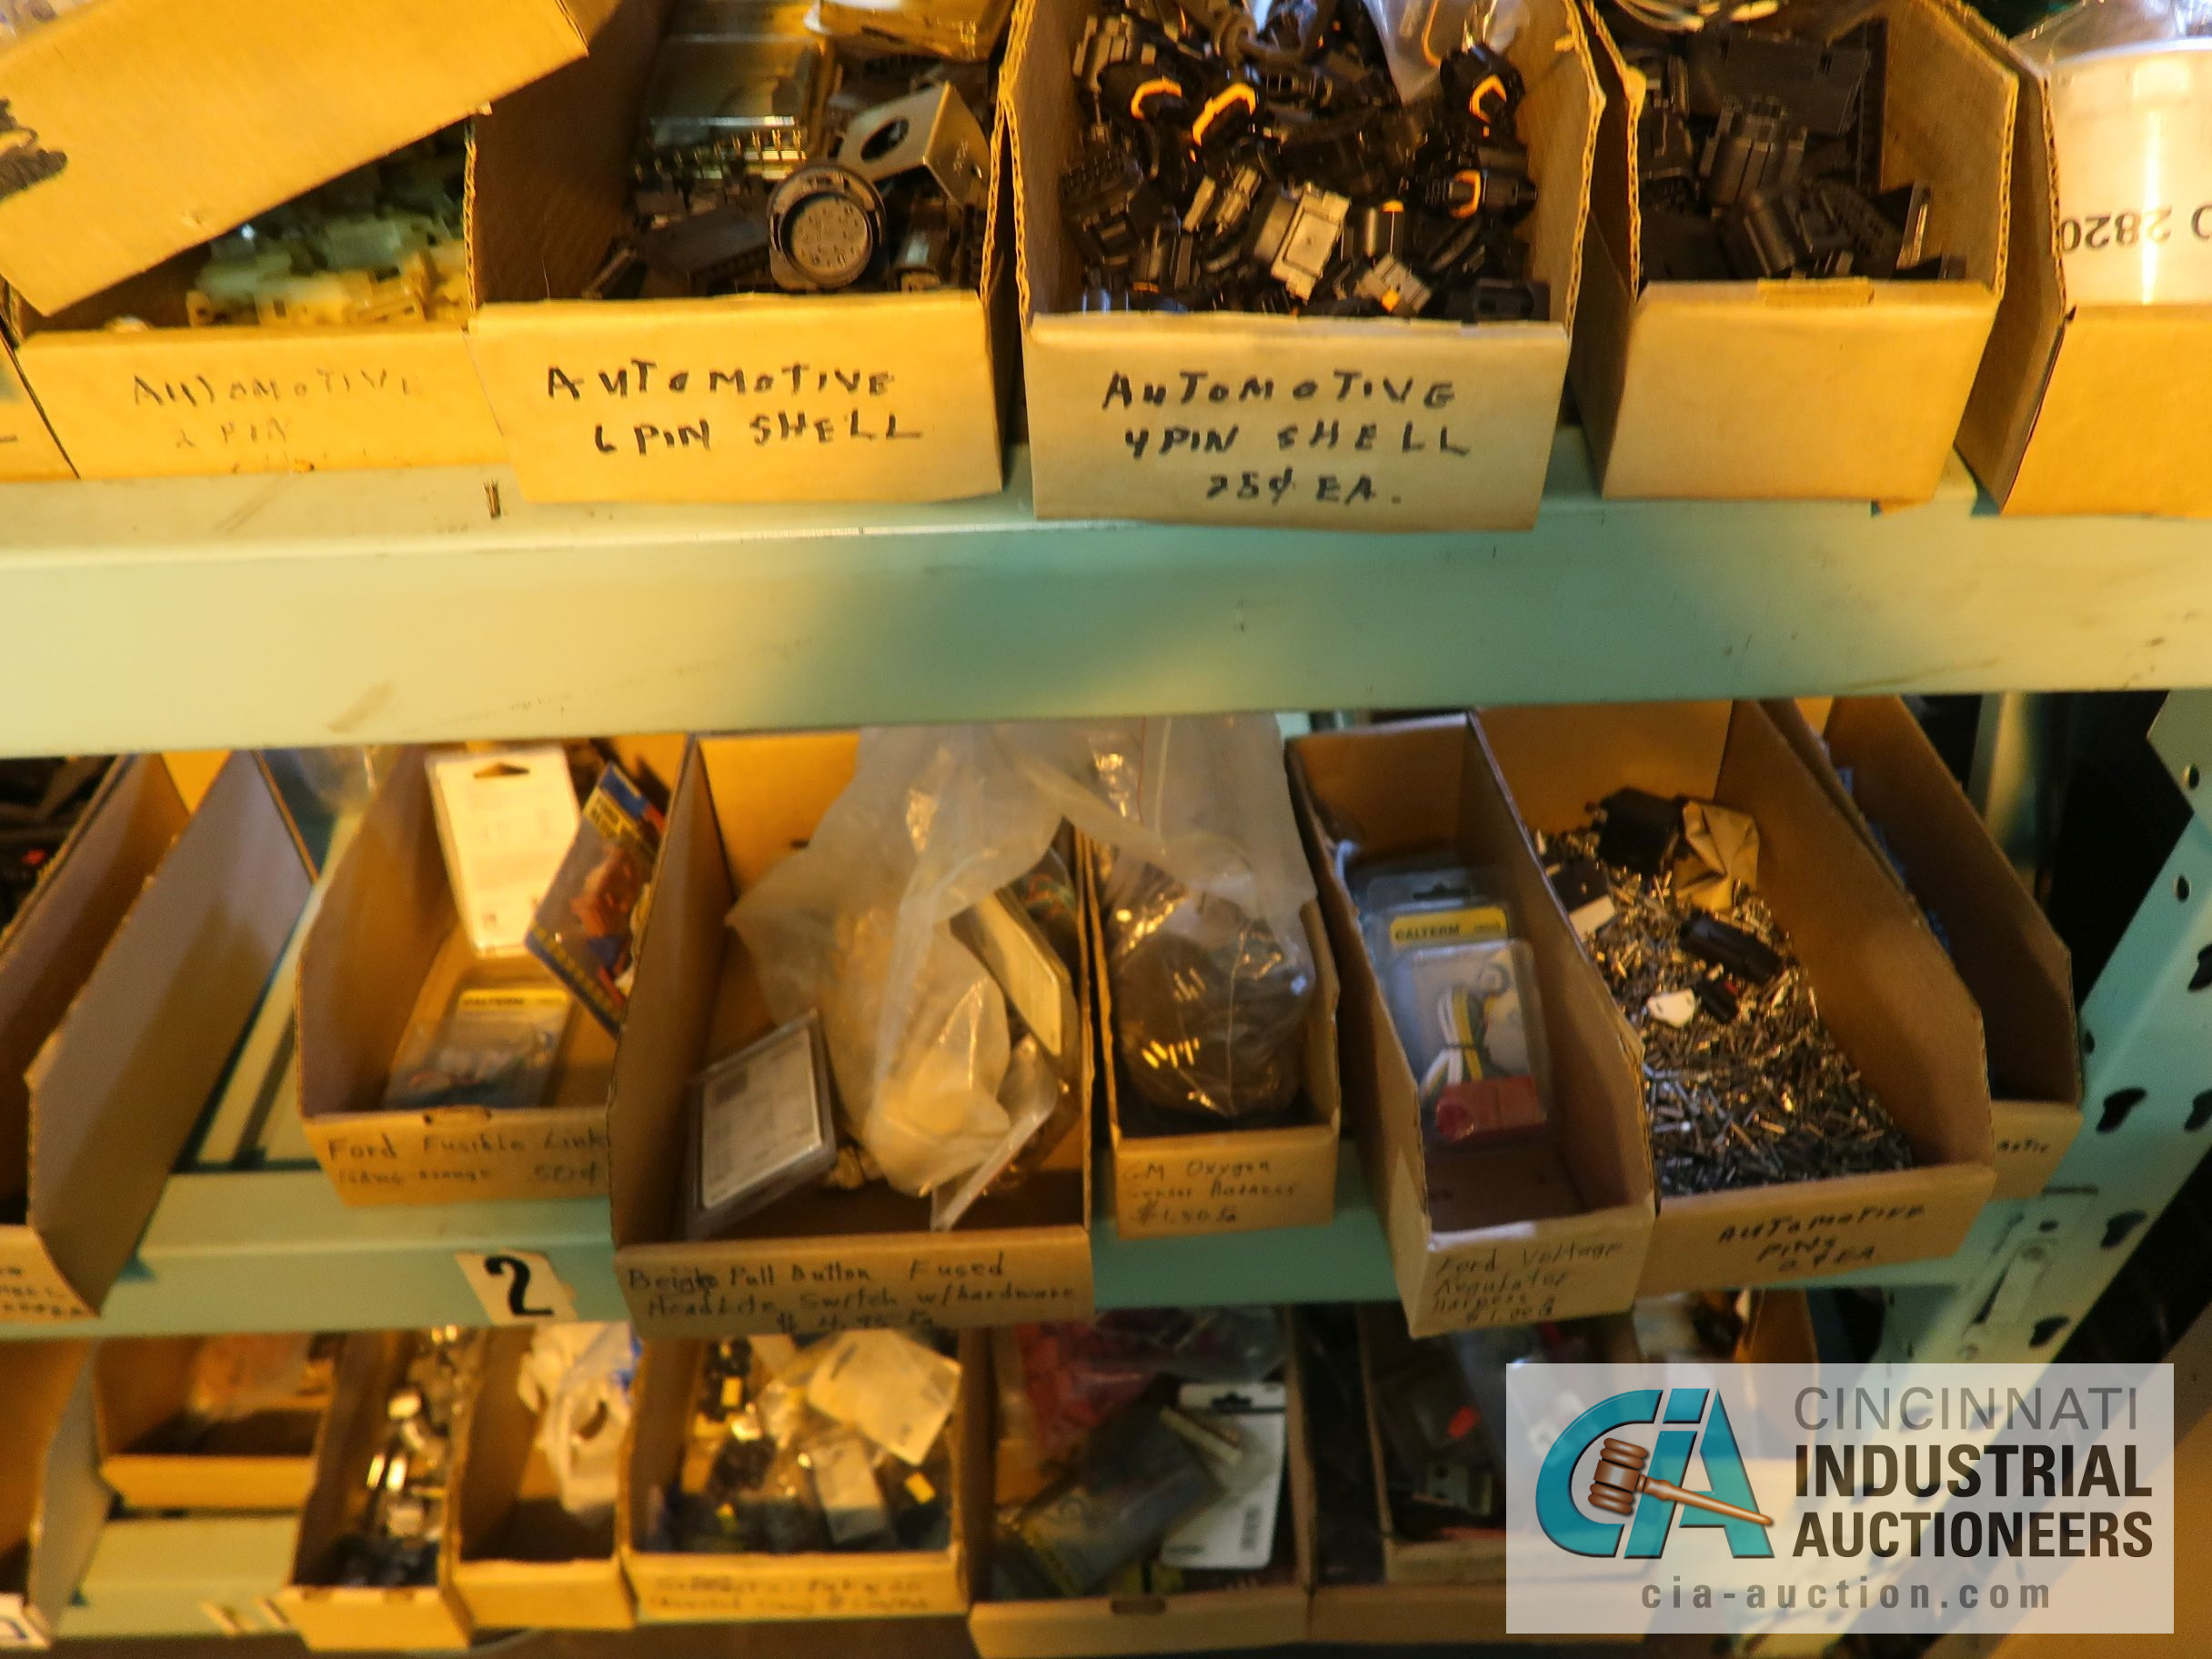 CONTENTS OF (5) RACKS INCLUDING MISCELLANEOUS AUTOMOTIVE PARTS, LIGHTS, FILTERS, ENGINE PARTS, RIMS, - Image 14 of 29